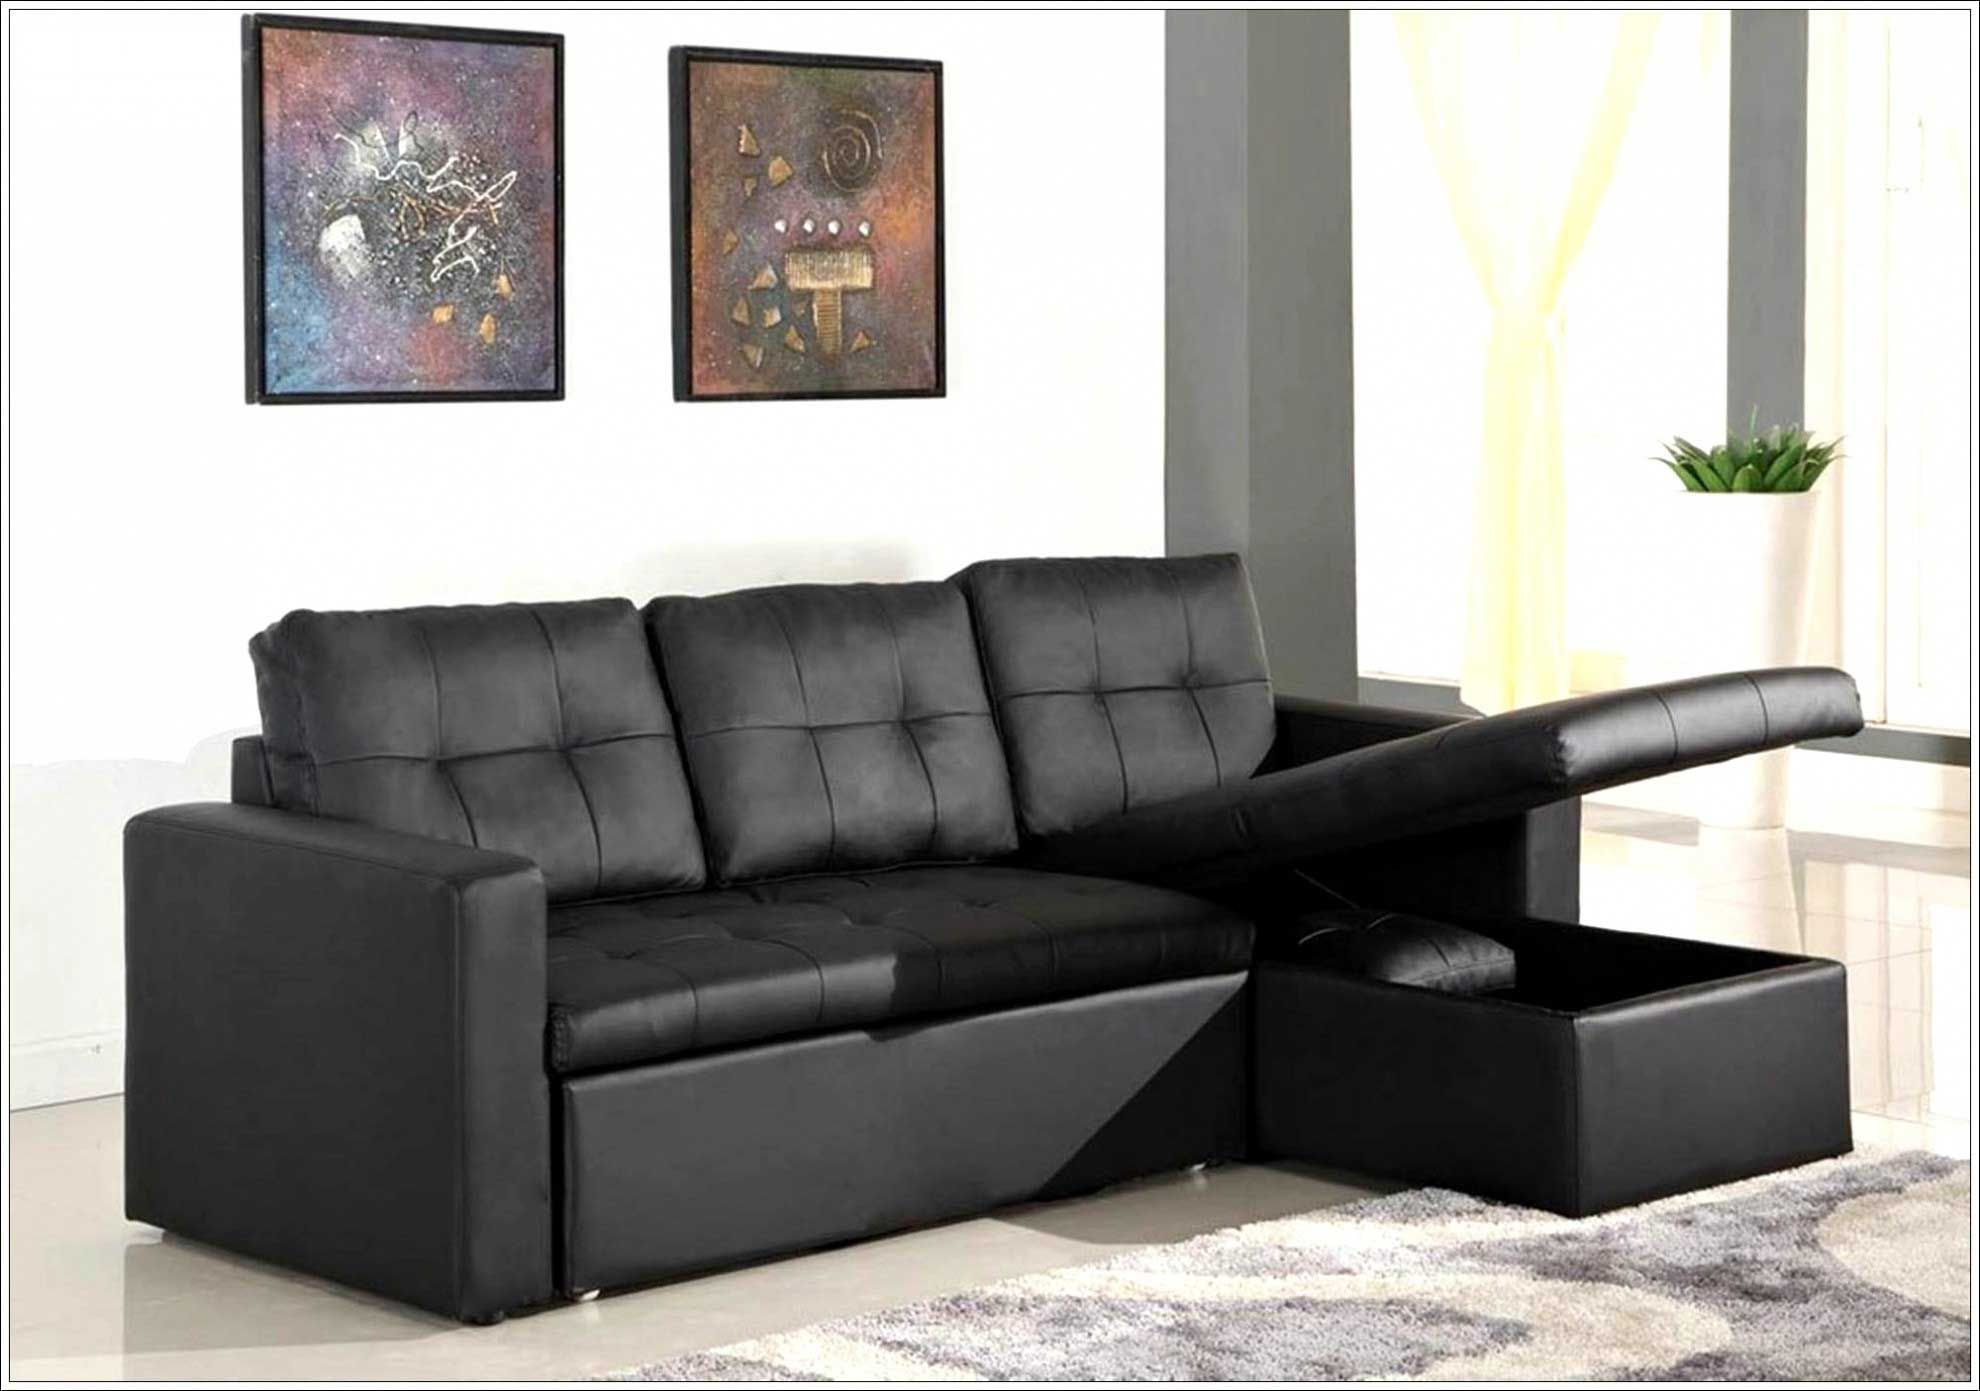 Joli Protege Canape Angle Avec Salon D Angle But 49 Ordinaire Canape Convertible Paris Design Chesterfield Furniture